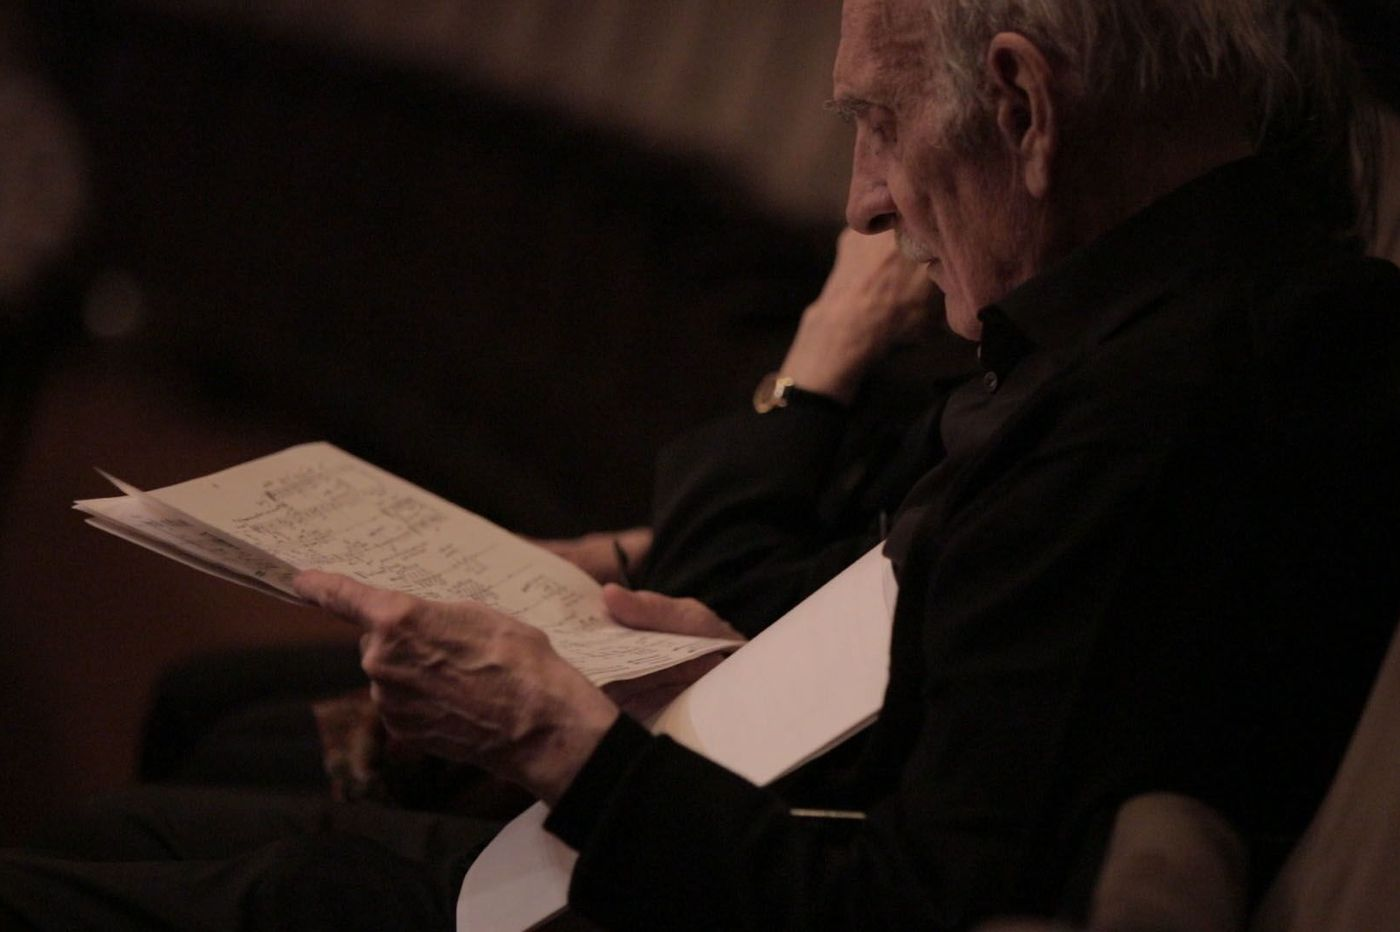 89-year-old Philly composer premieres a new piece at Lincoln Center in a program spanning 70 years of his music